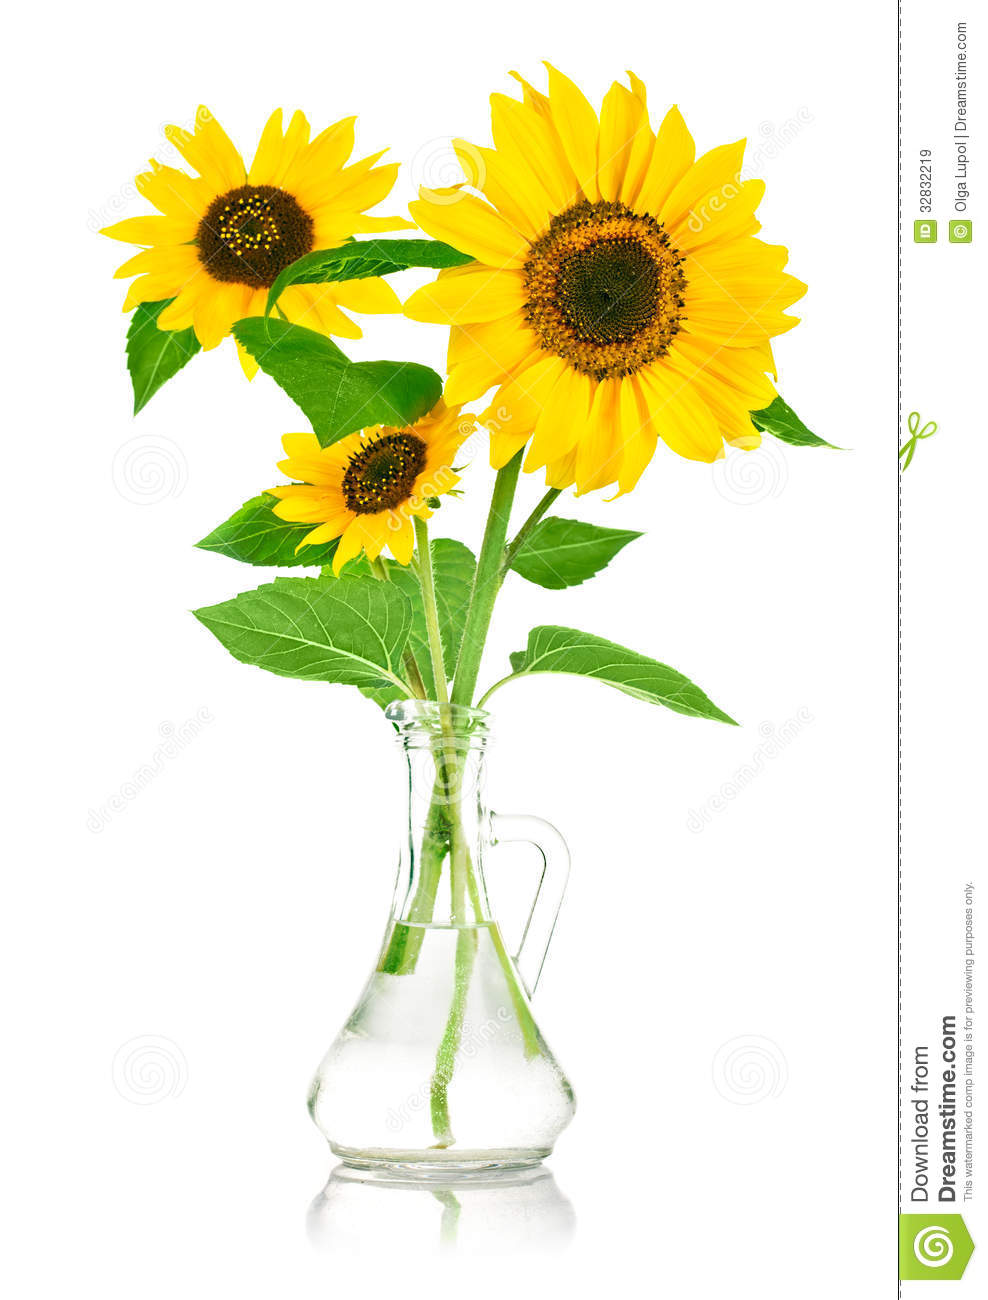 Vase with sun flowers clipart.